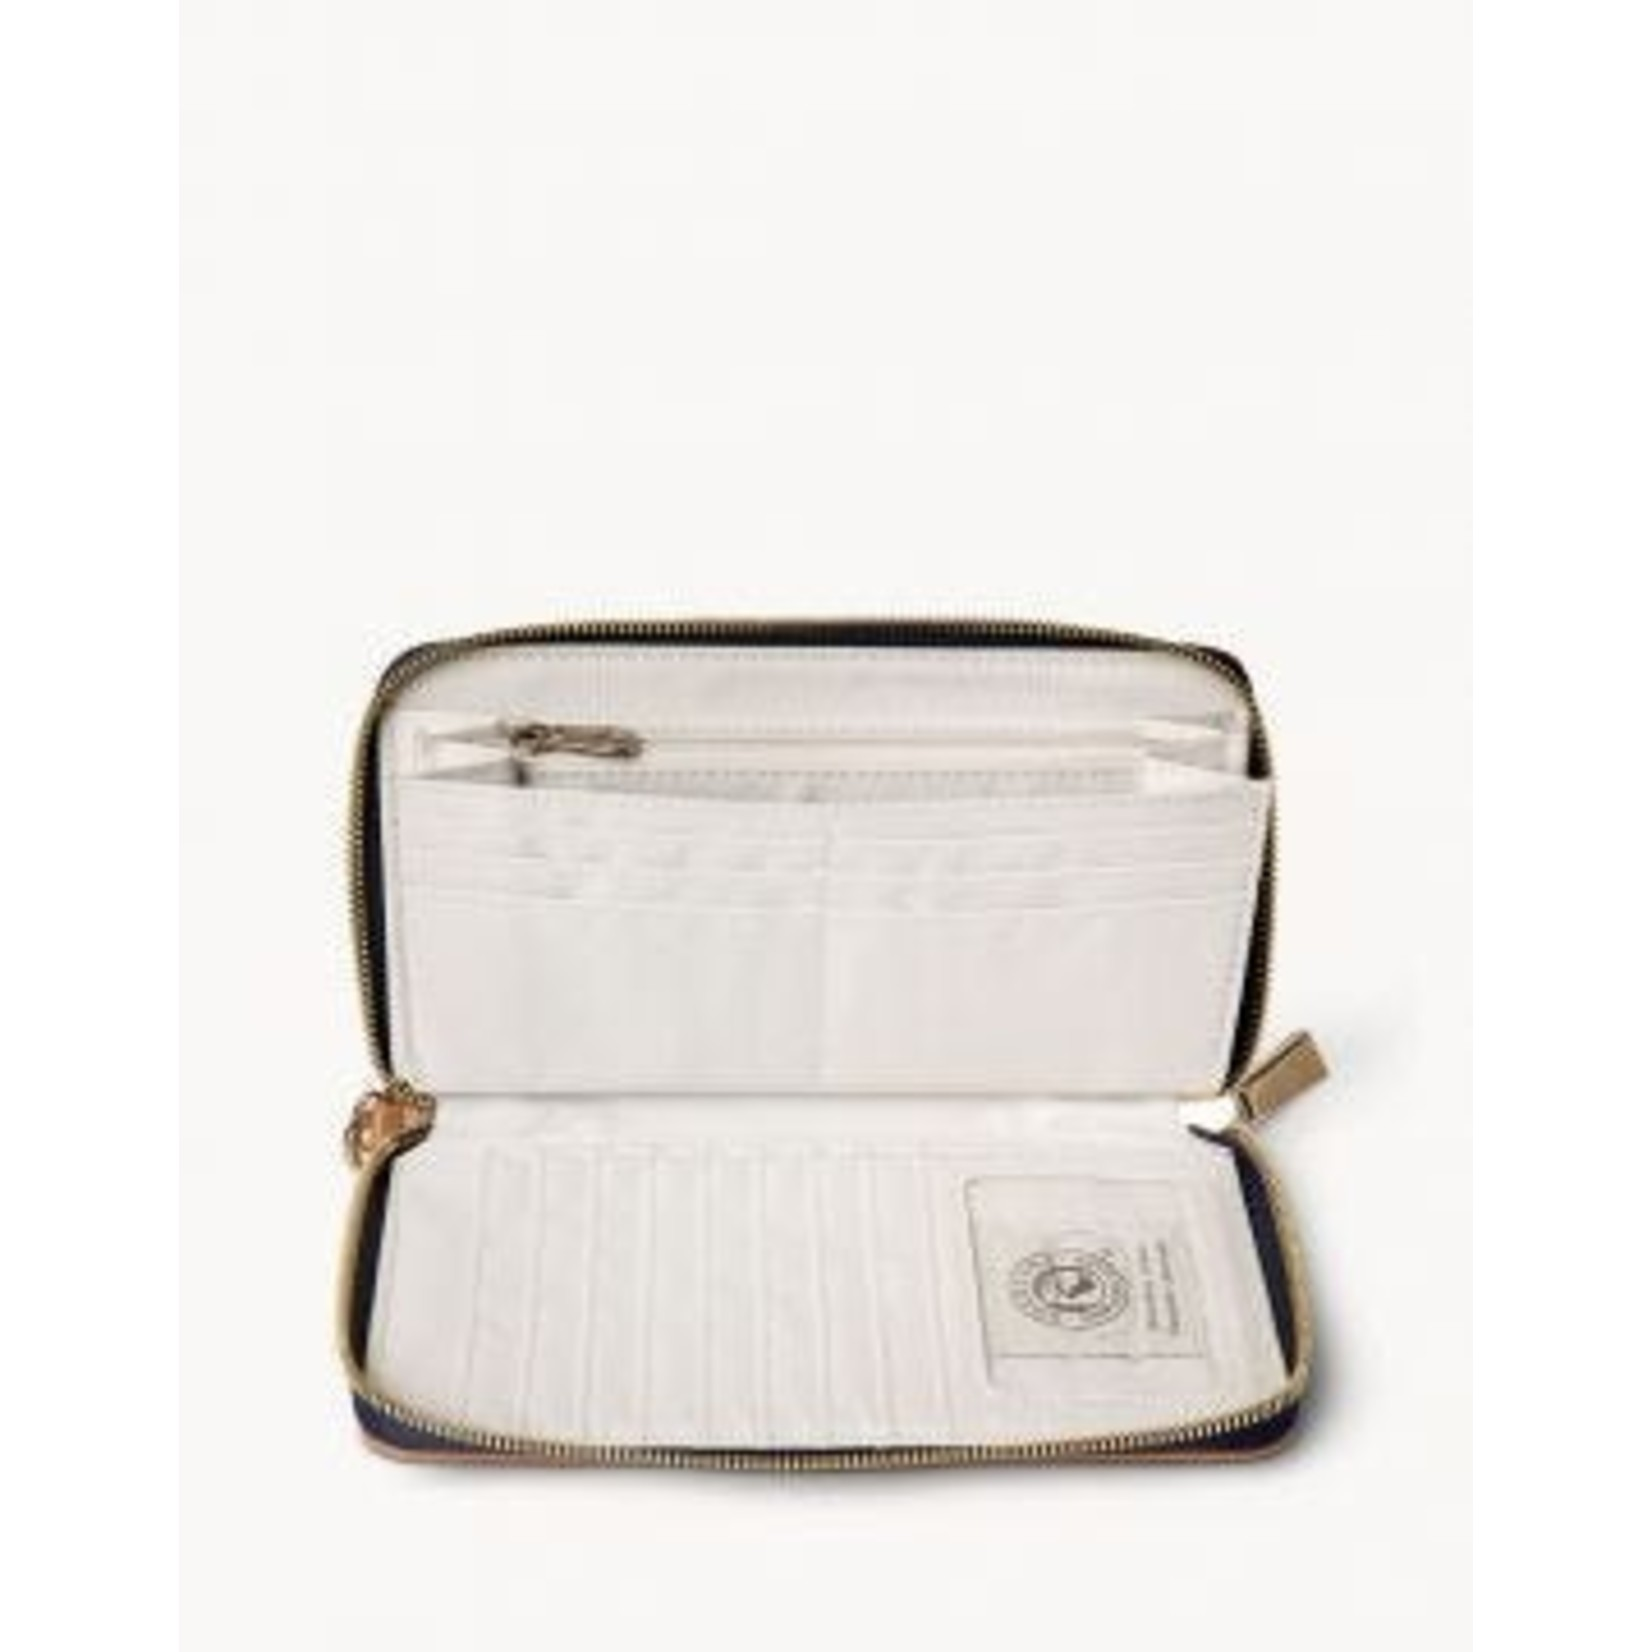 Spartina Shelter Cove Yacht Club Wallet